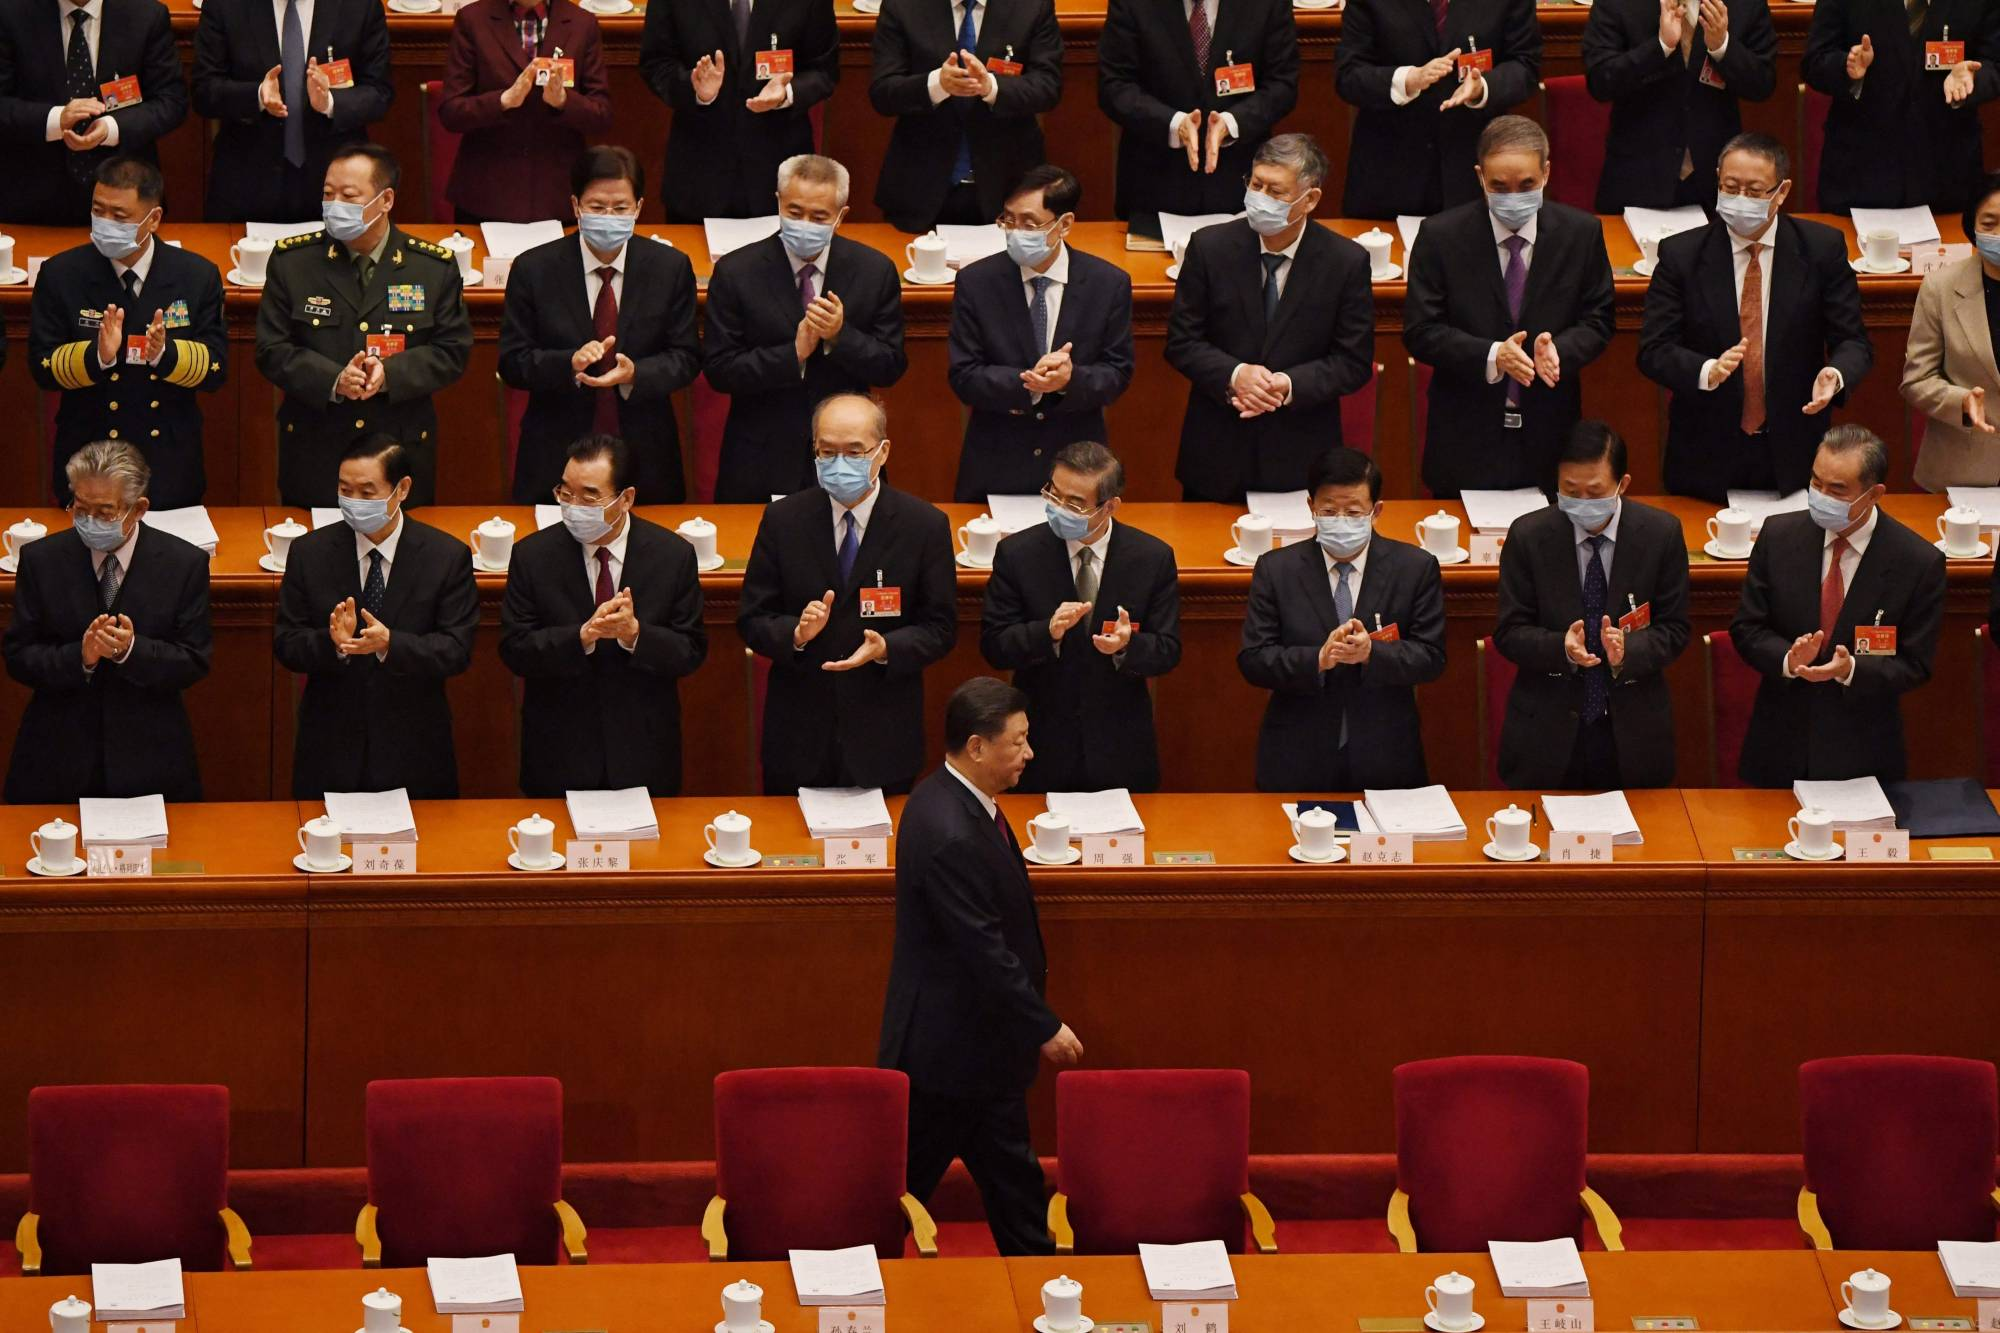 Xi Goes Mask-Free, Raising Questions Over Vaccination Status